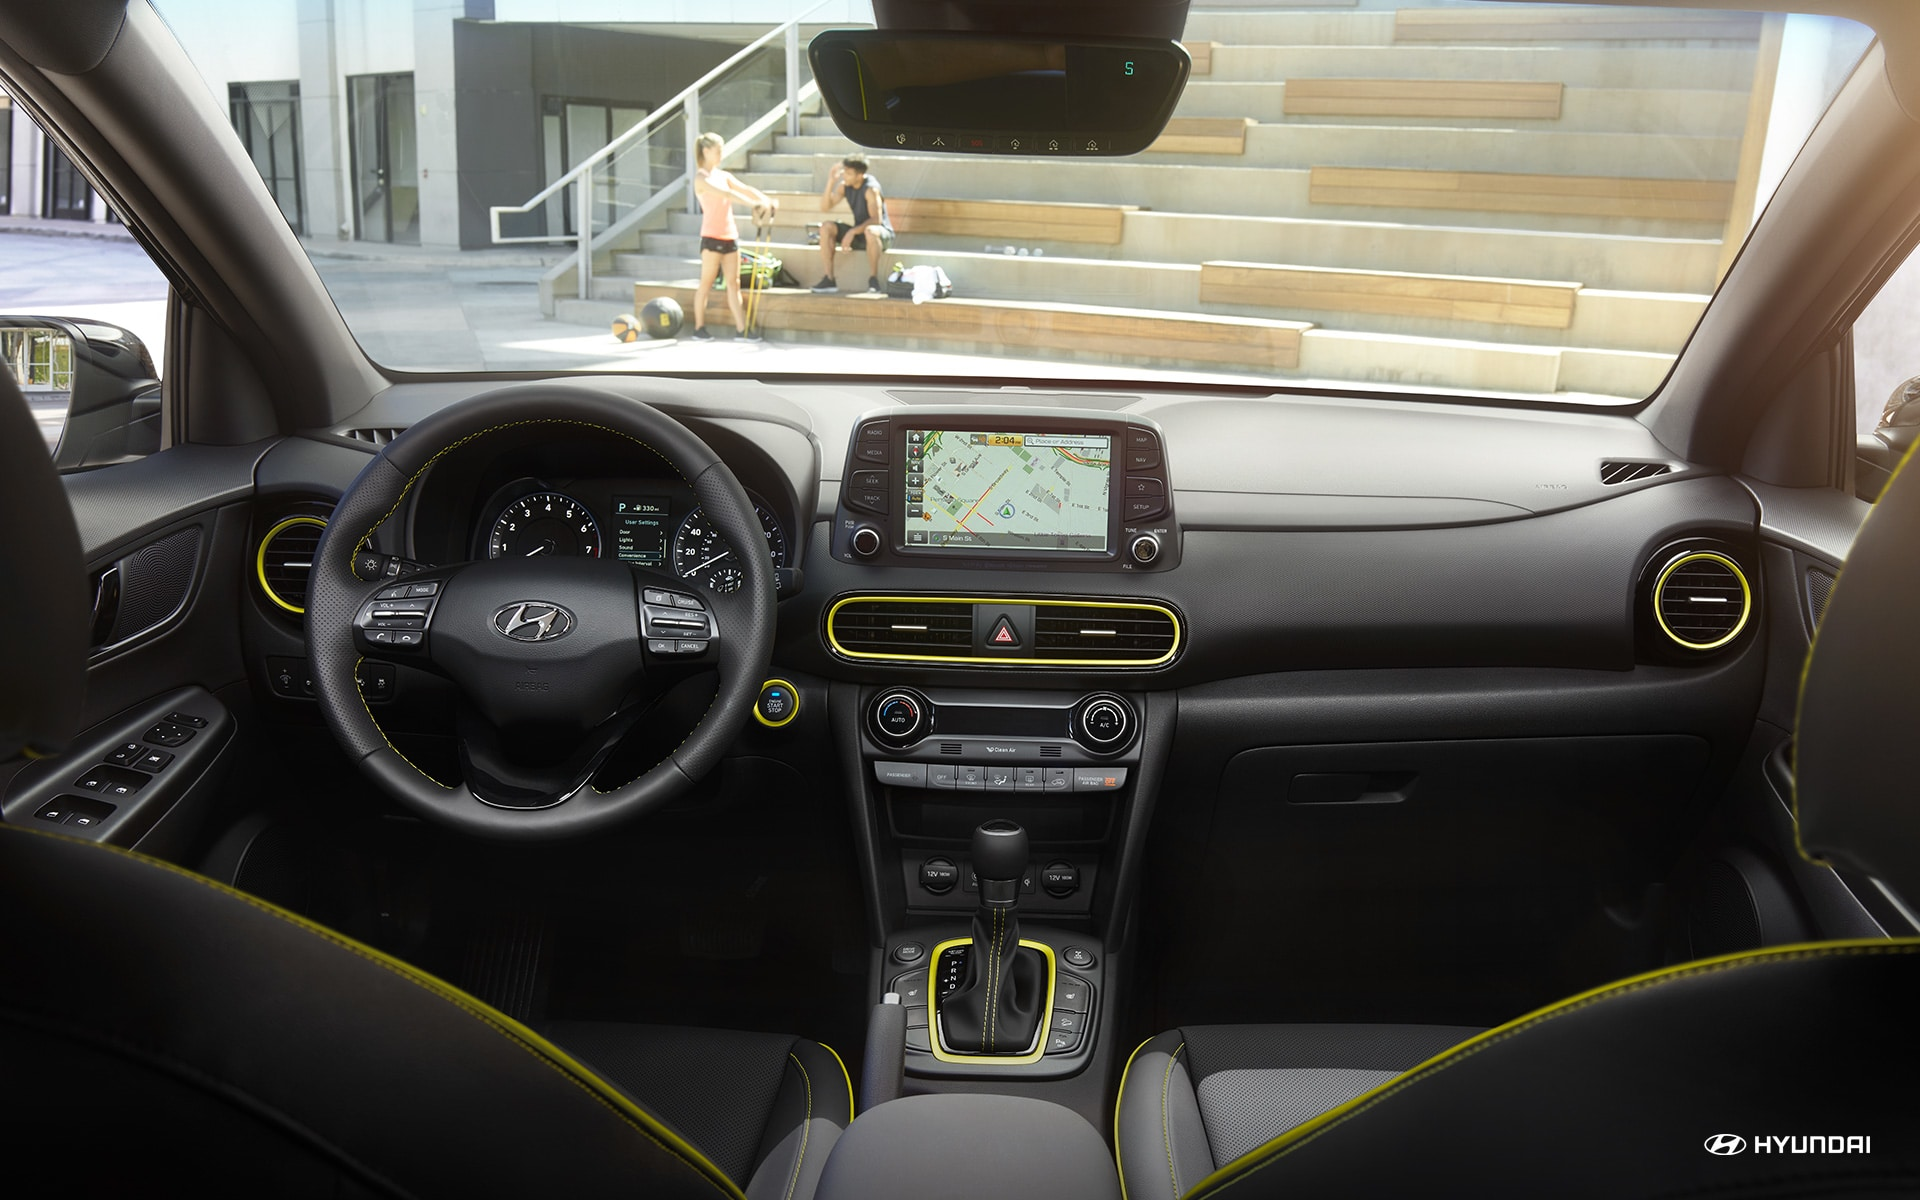 2019 Hyundai Kona Center Console